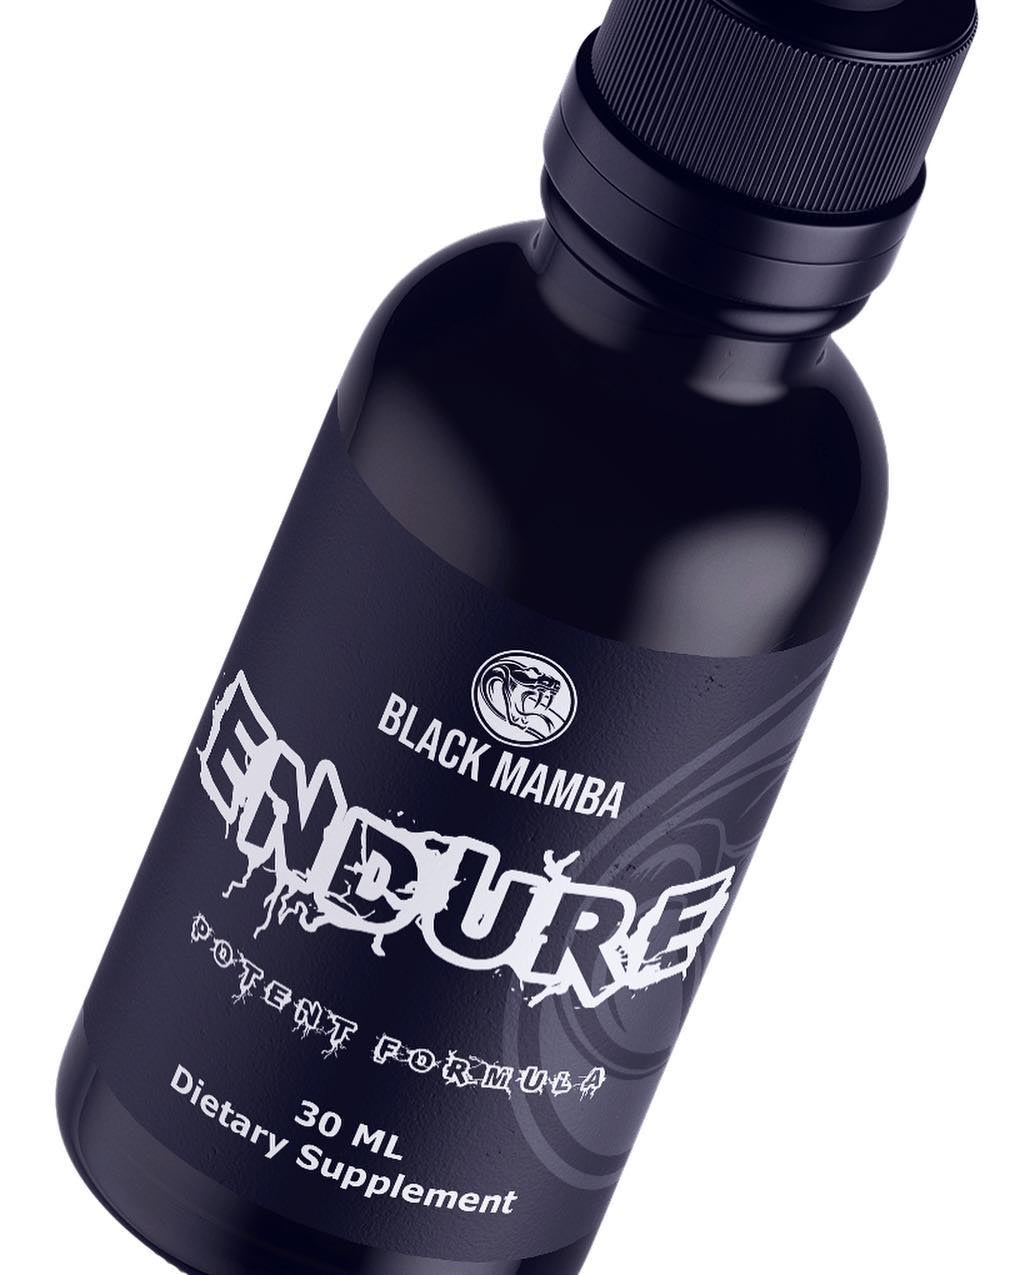 Black mamba Endure 30 servings